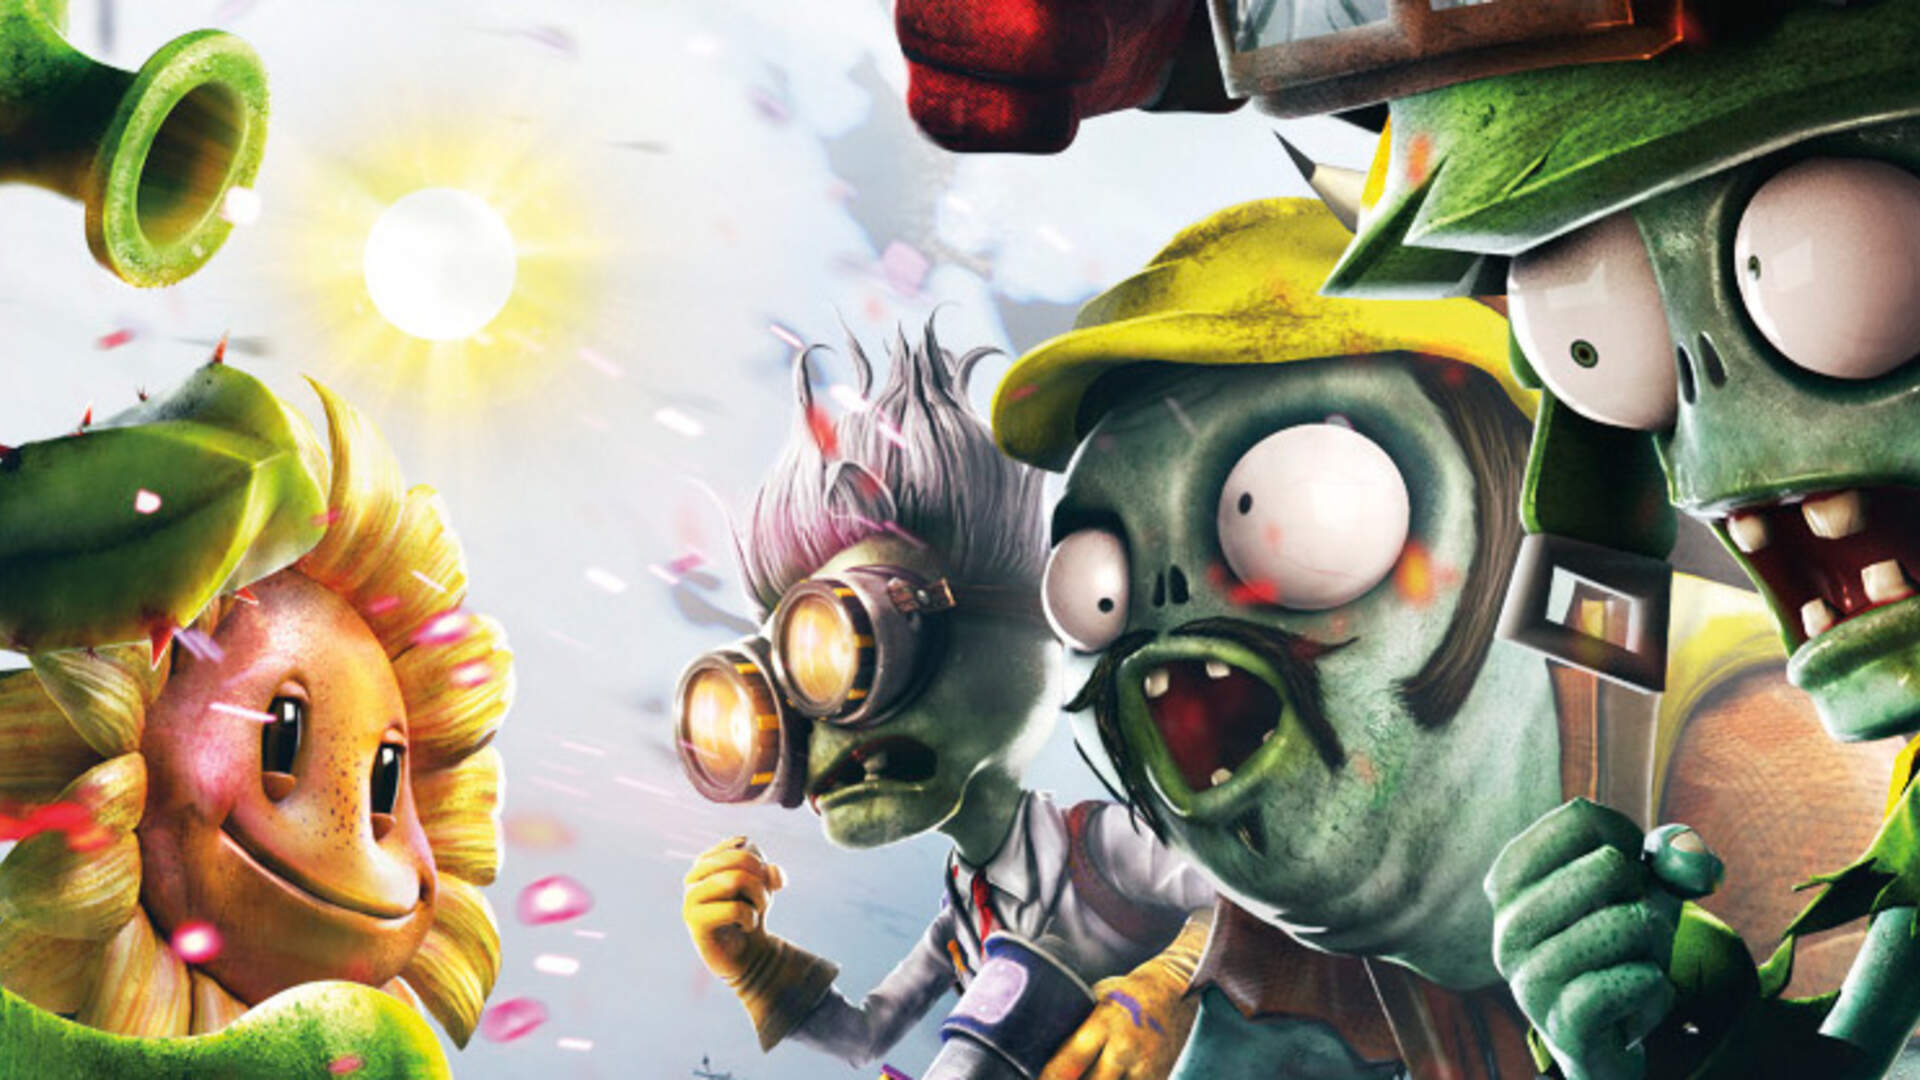 Plants vs Zombies: Garden Warfare Xbox One Review: Guns Don't Kill People. Peas Kill People